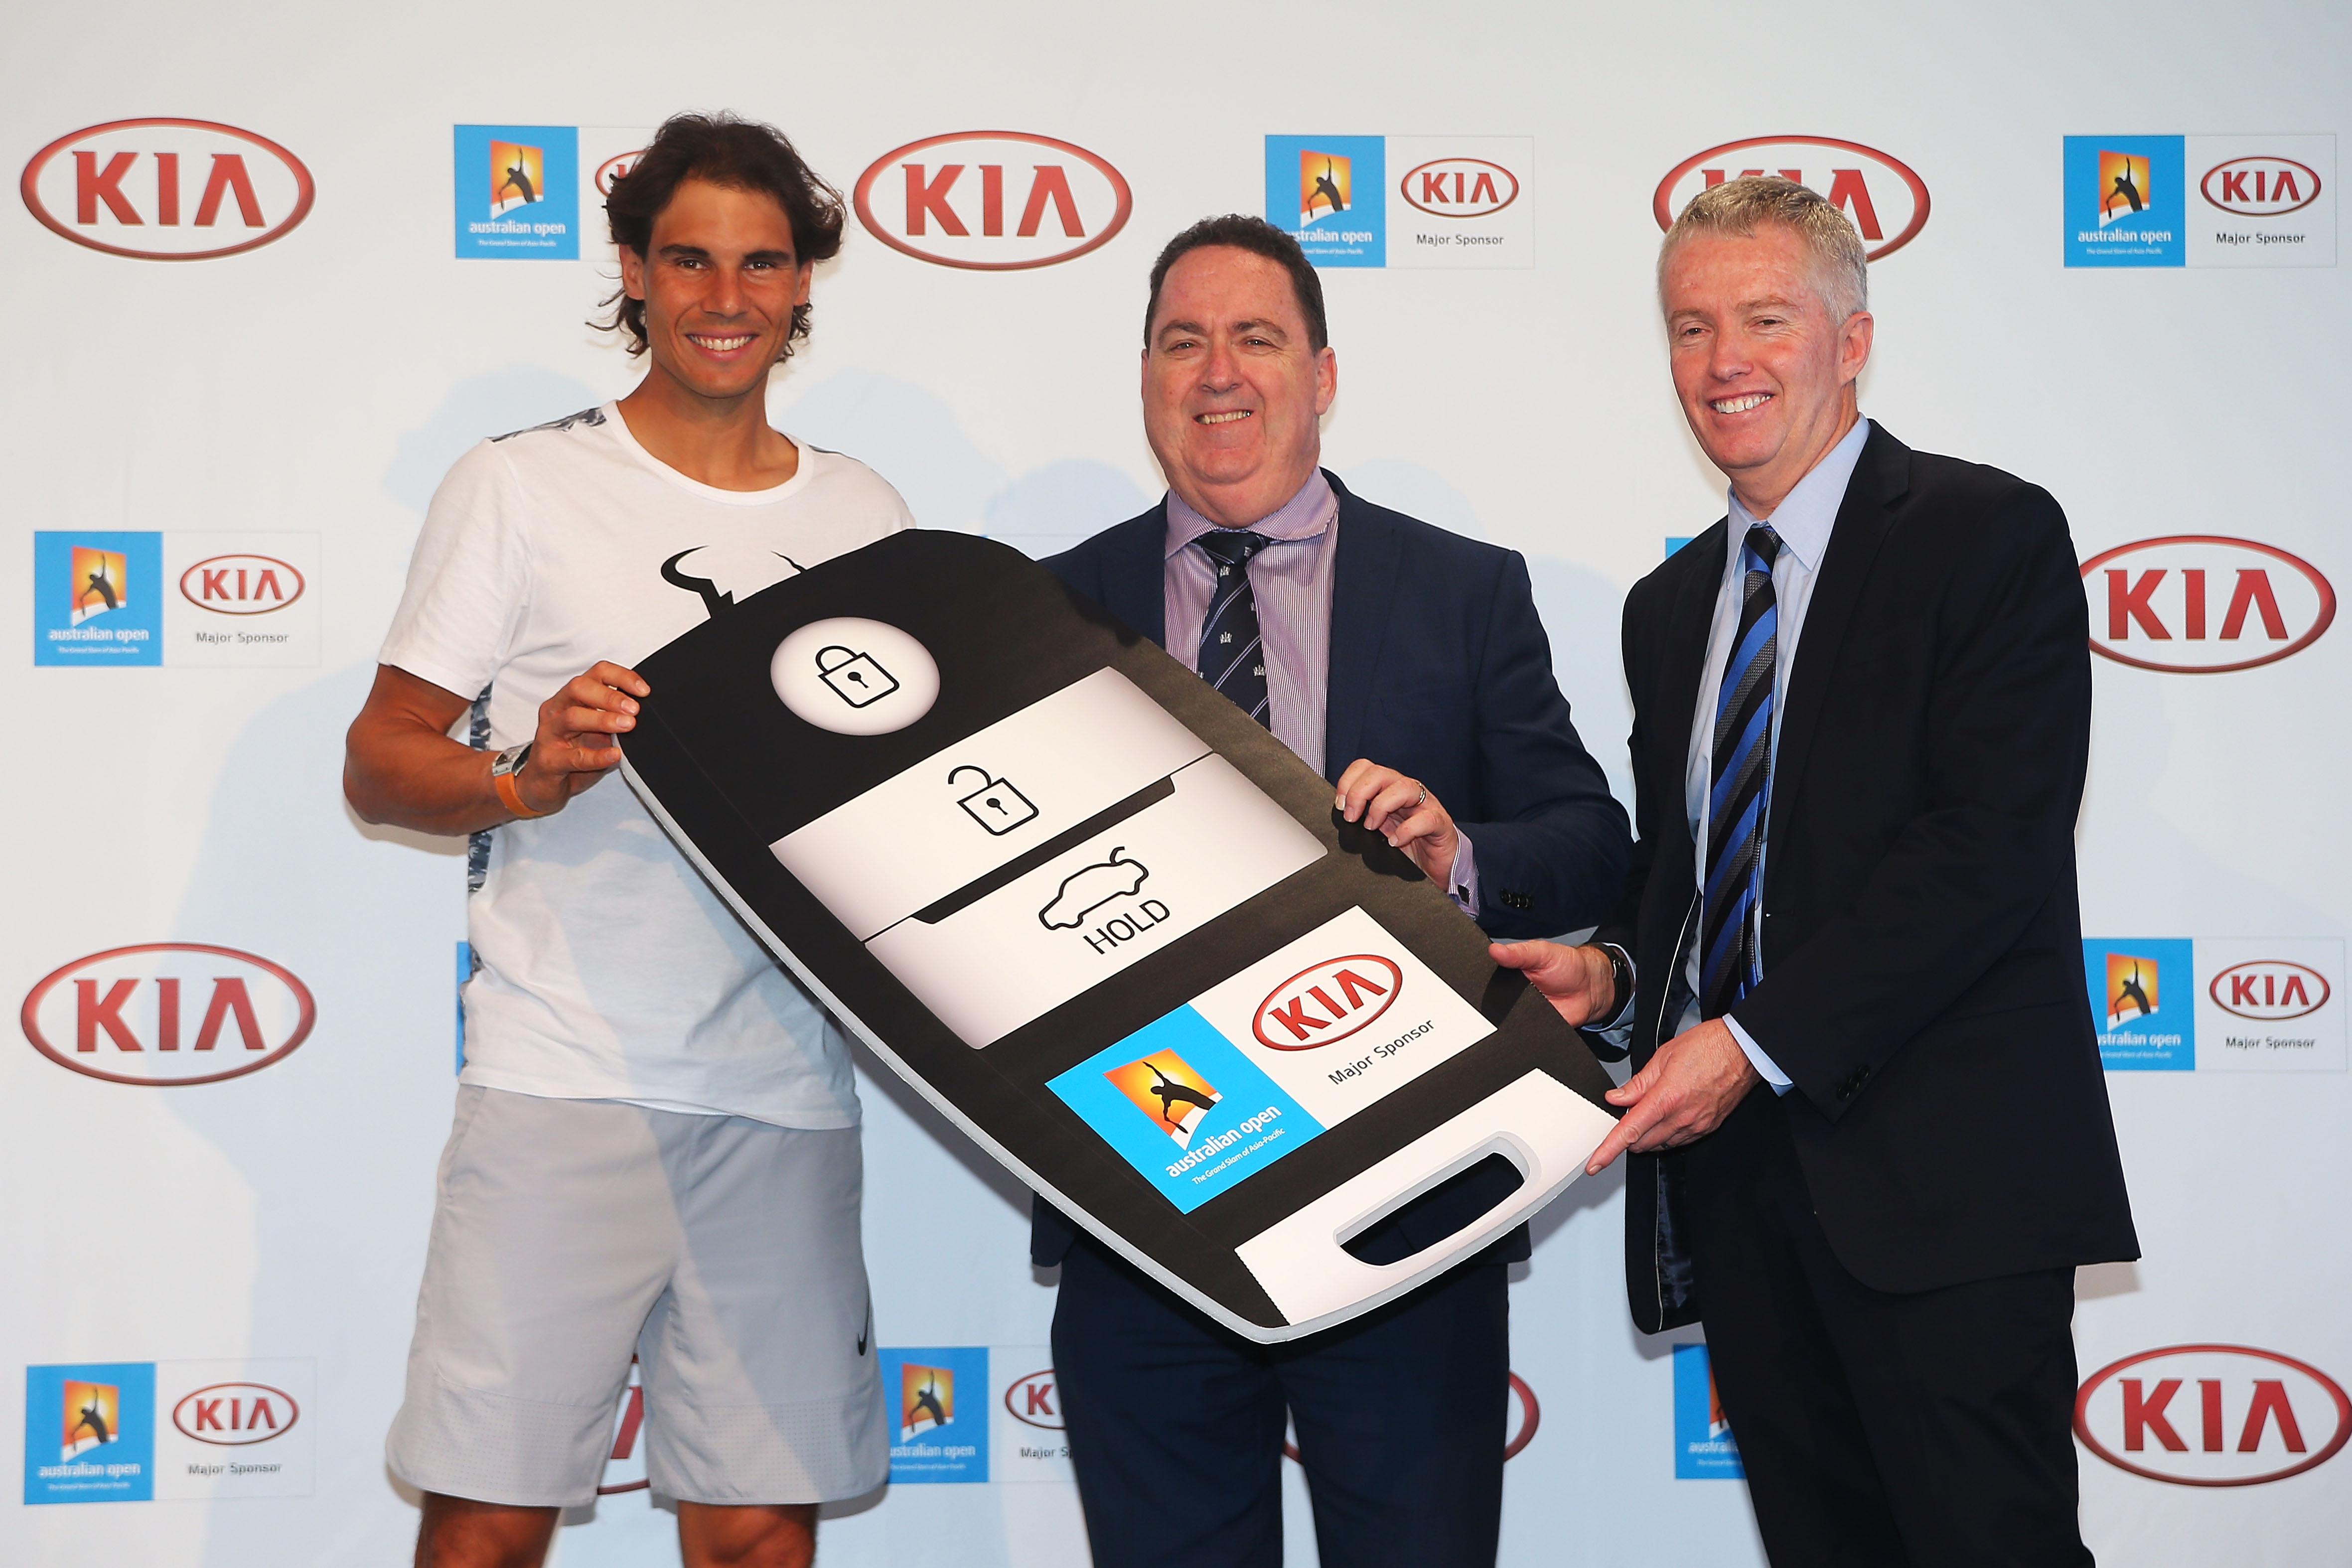 during a Kia Key handover ceremony at Garden Square in Melbourne Park on January 13, 2016 in Melbourne, Australia.